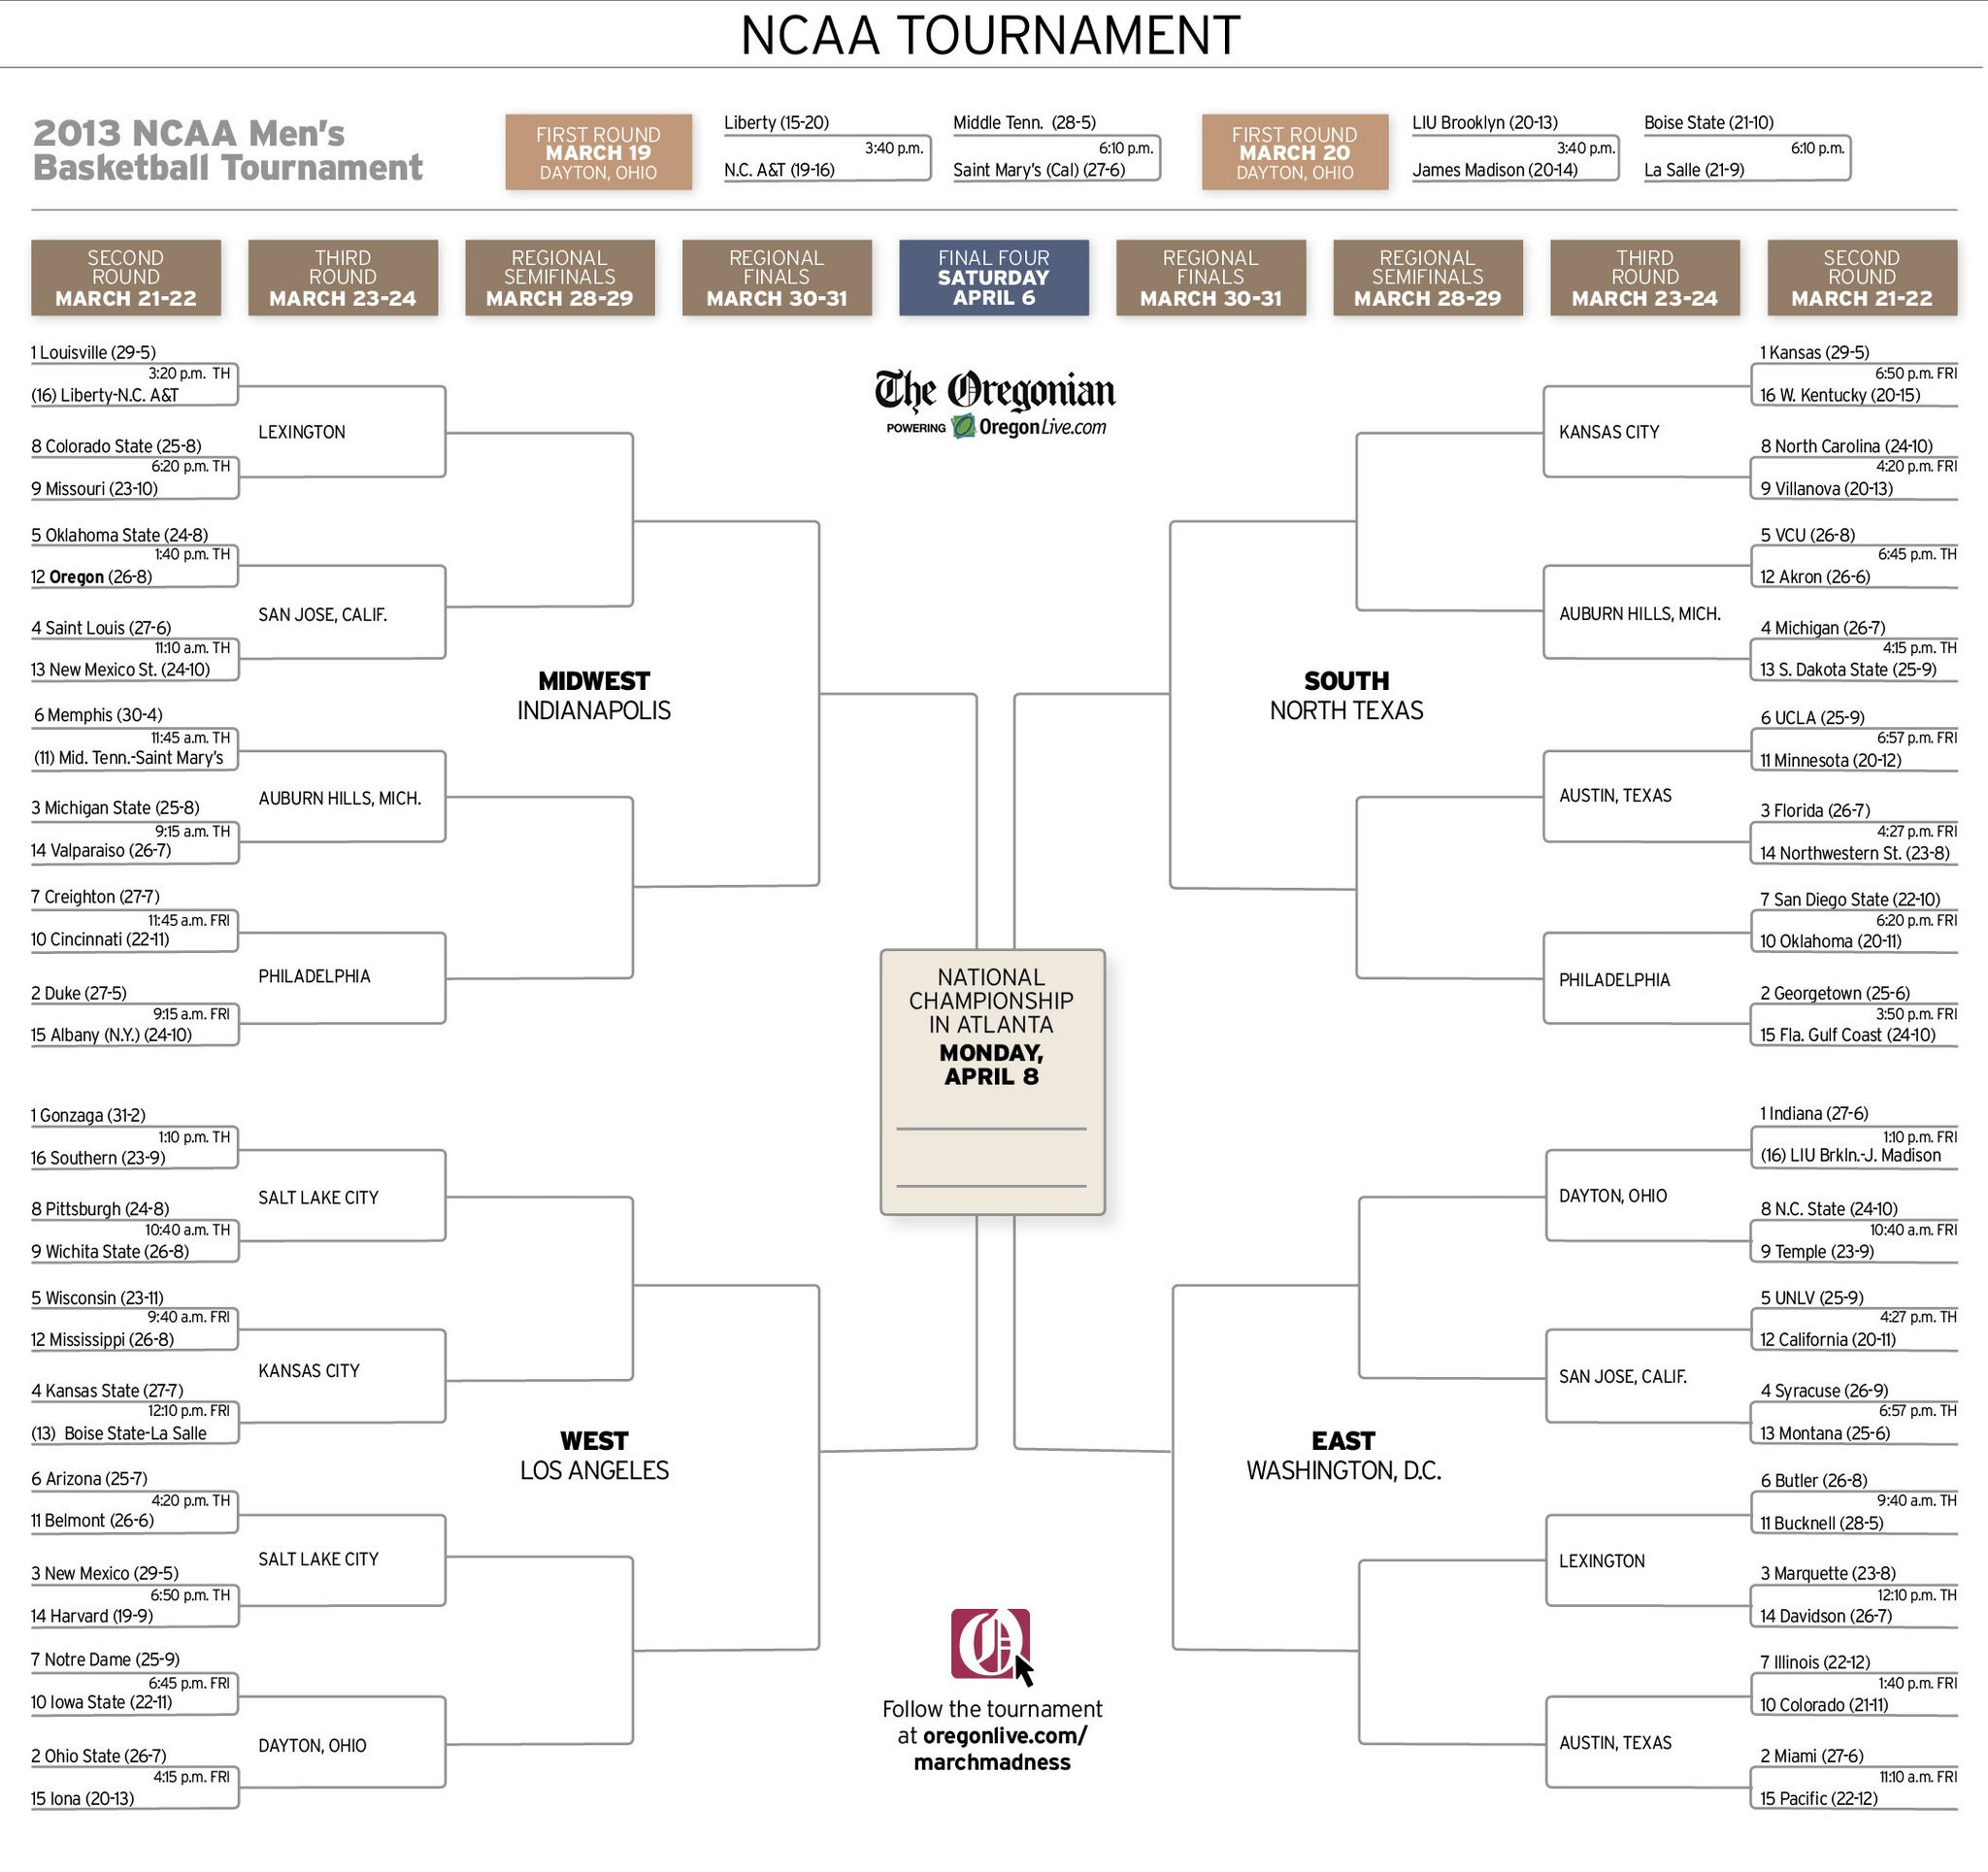 image about Printable March Madness Bracket titled NCAA Event bracket 2013: Printable March Insanity